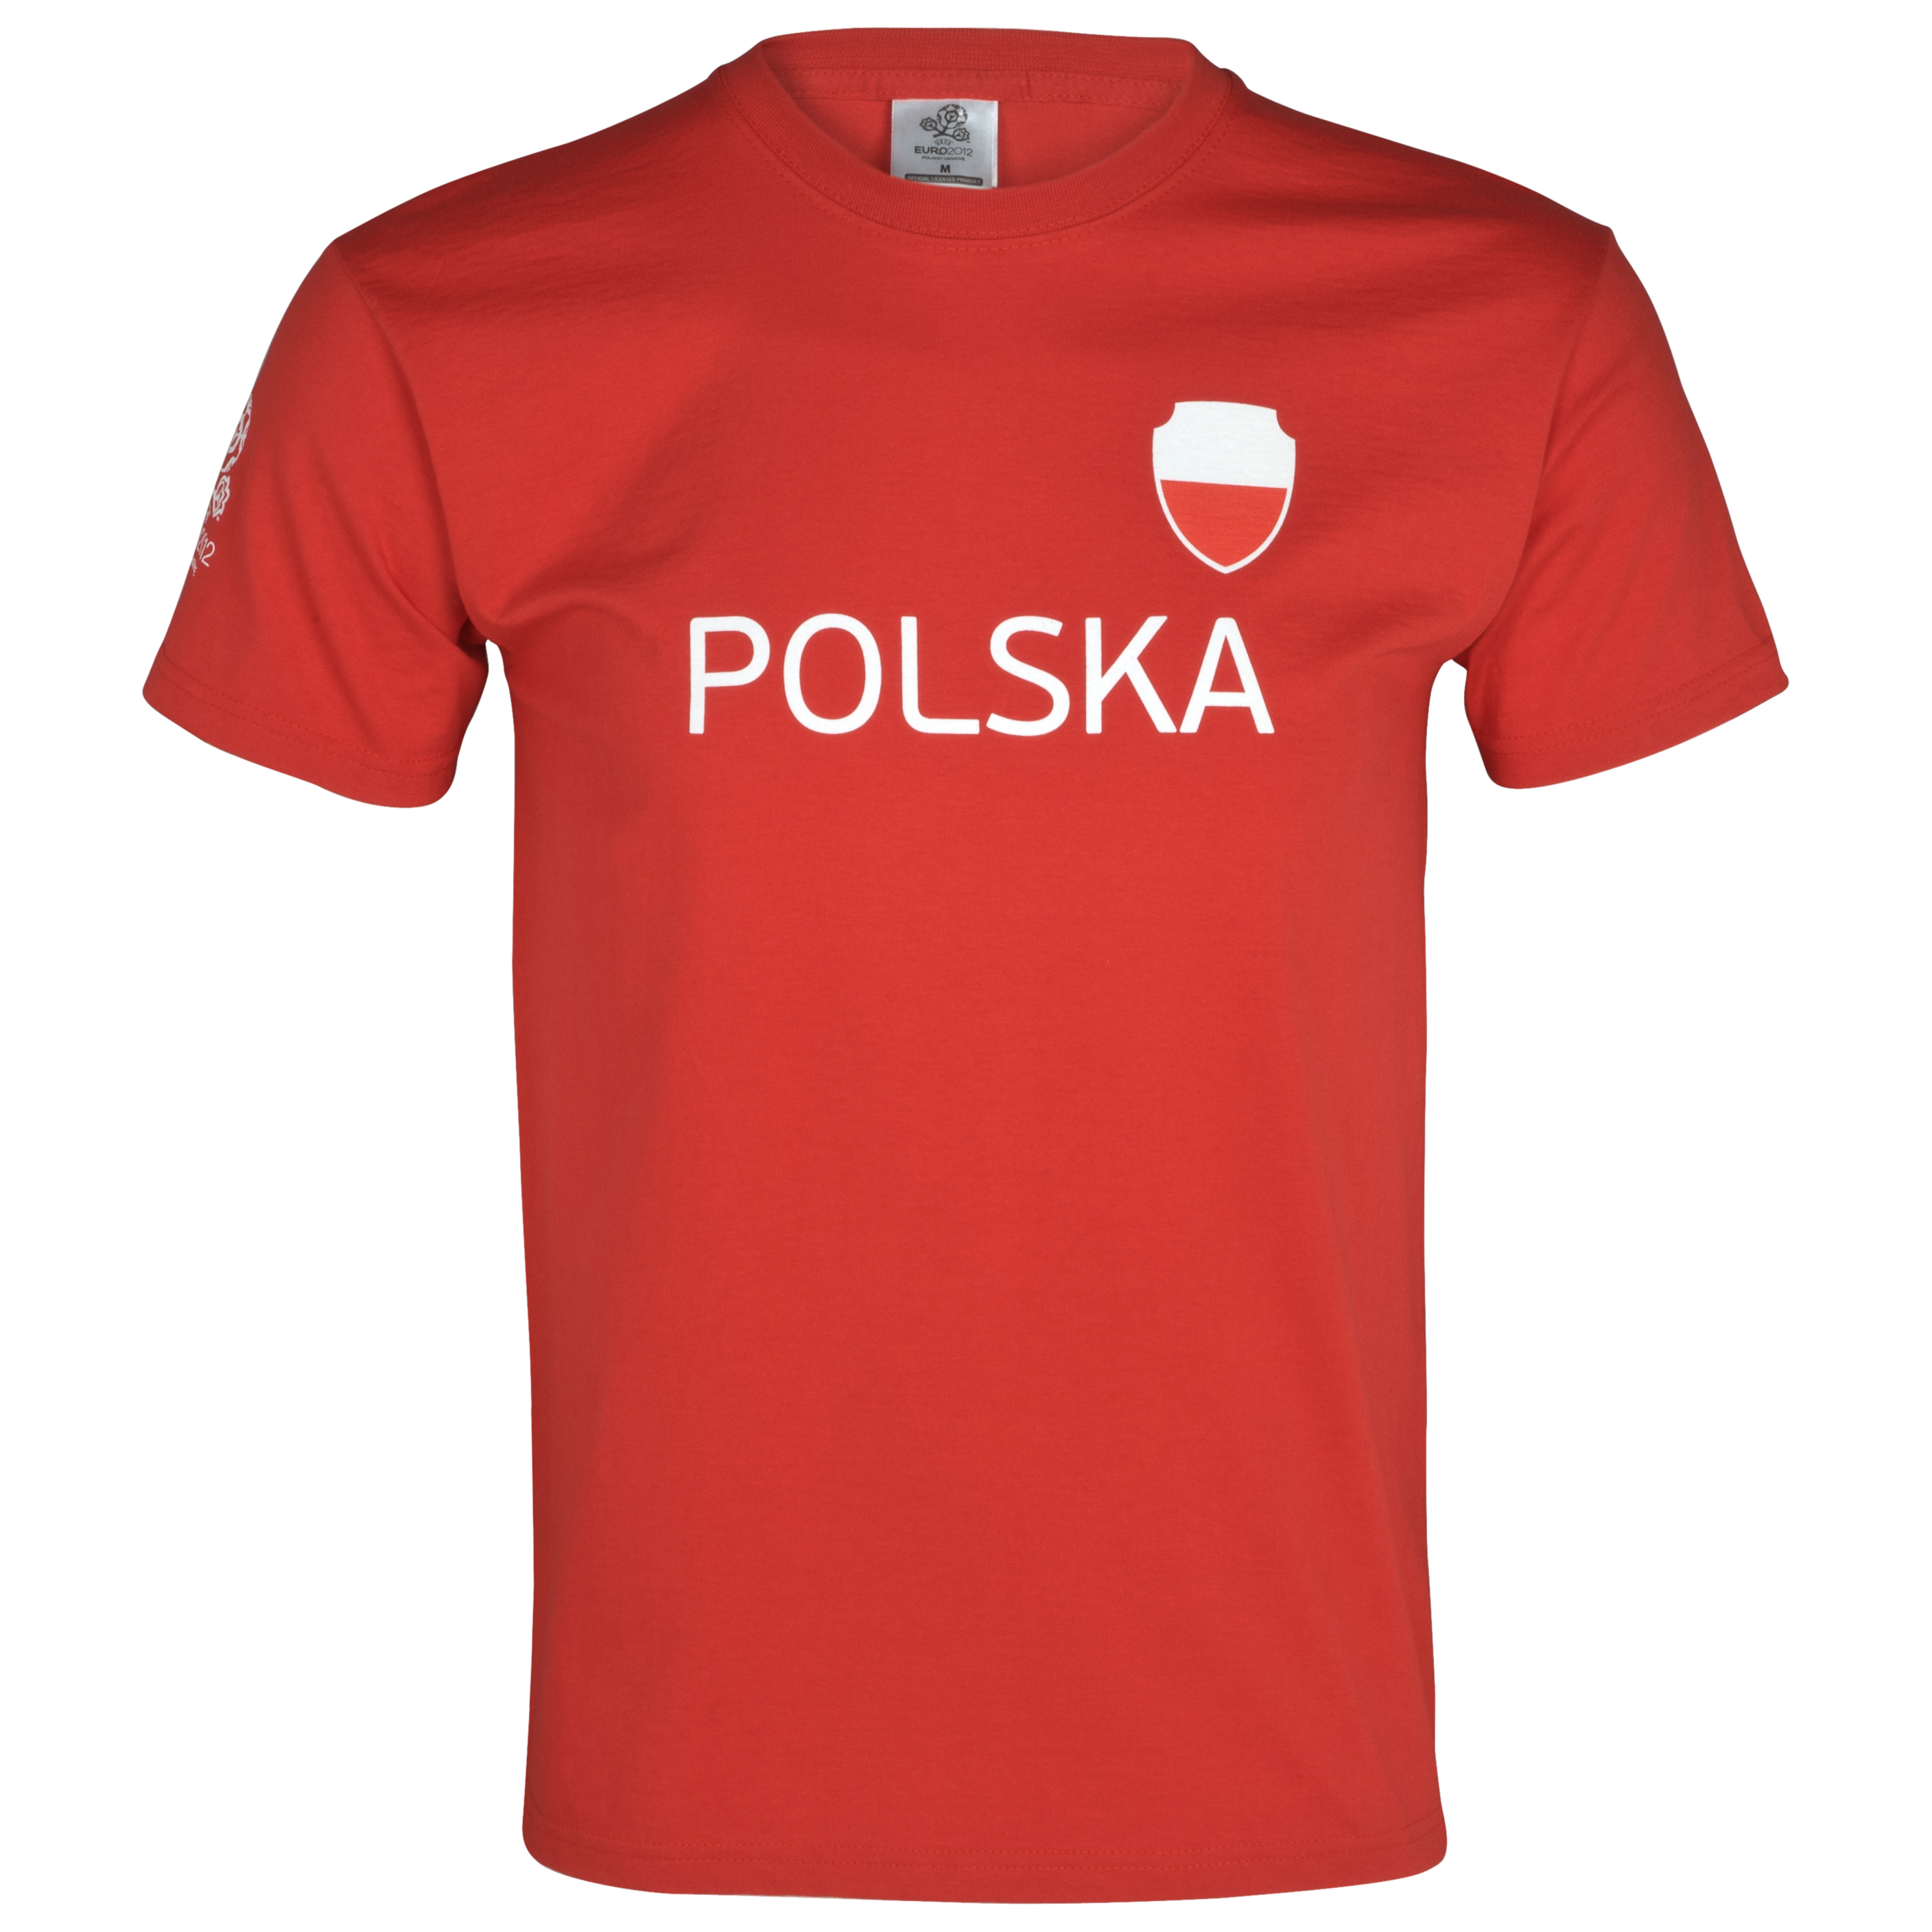 Euro 2012 Poland T-Shirt - Red/White